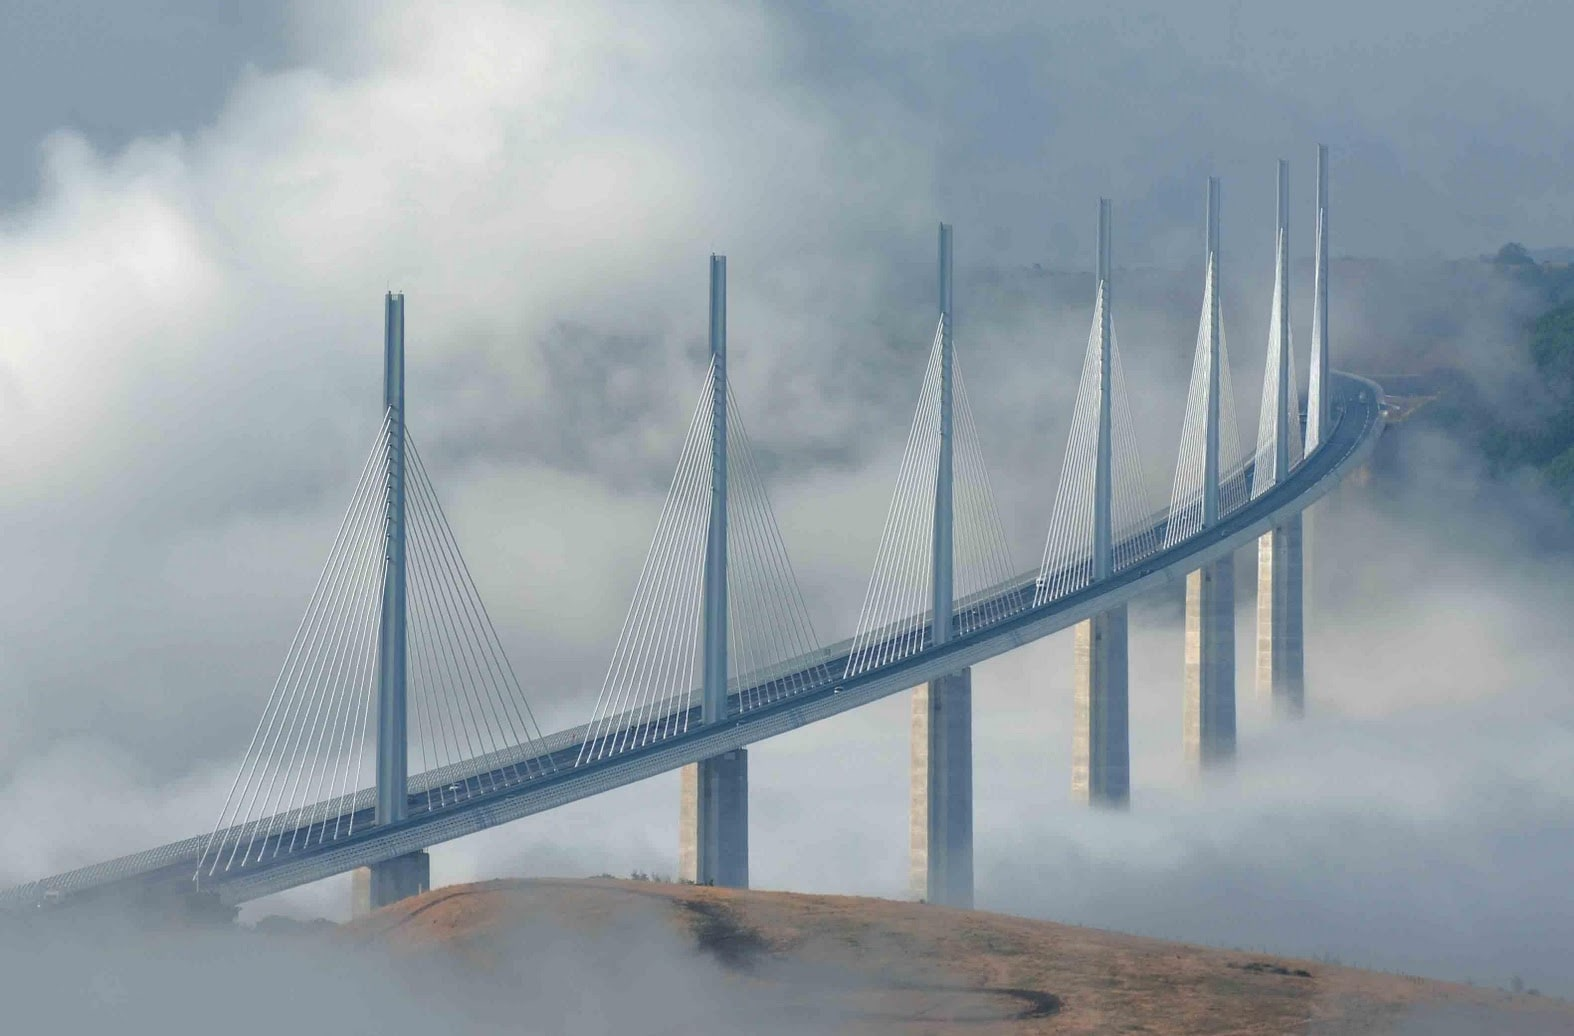 millau-viaduct-bridge-the-tallest-bridge-secret-world